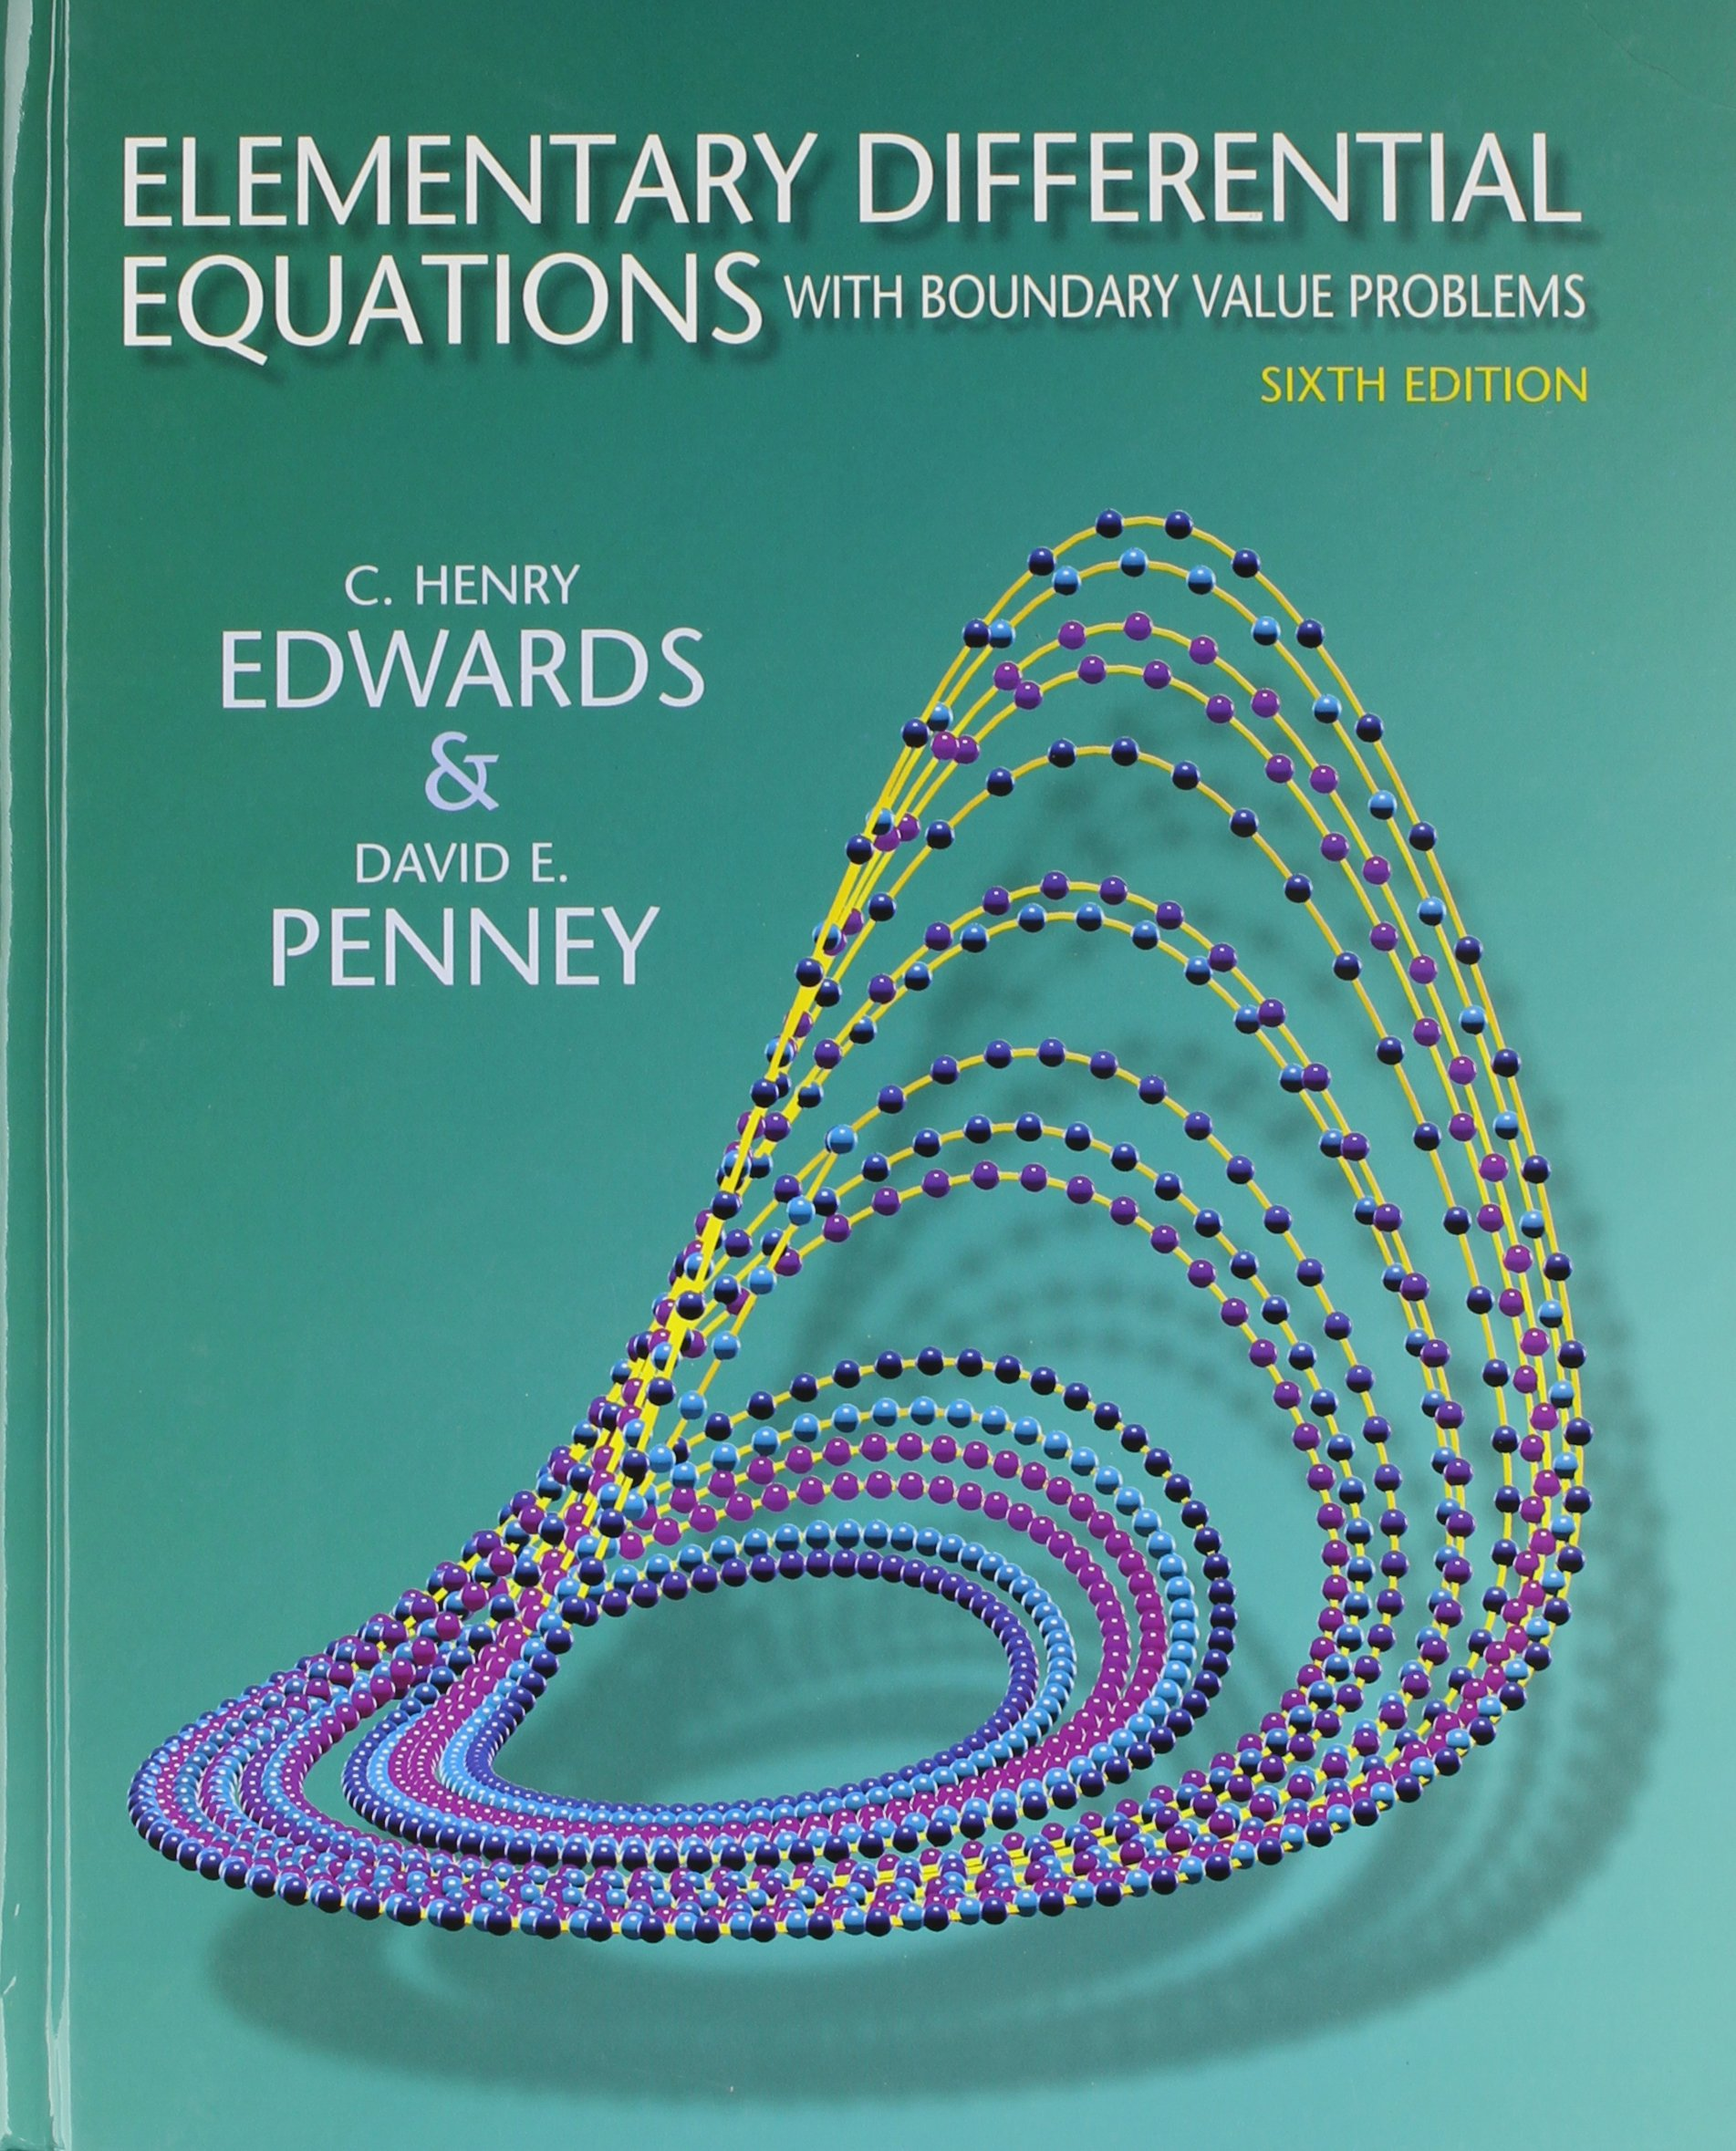 Elementary Differential Equations With Boundary Value Problems + Student Solutions  Manual: C. Henry Edwards, David E. Penney: Amazon.com.au: Books